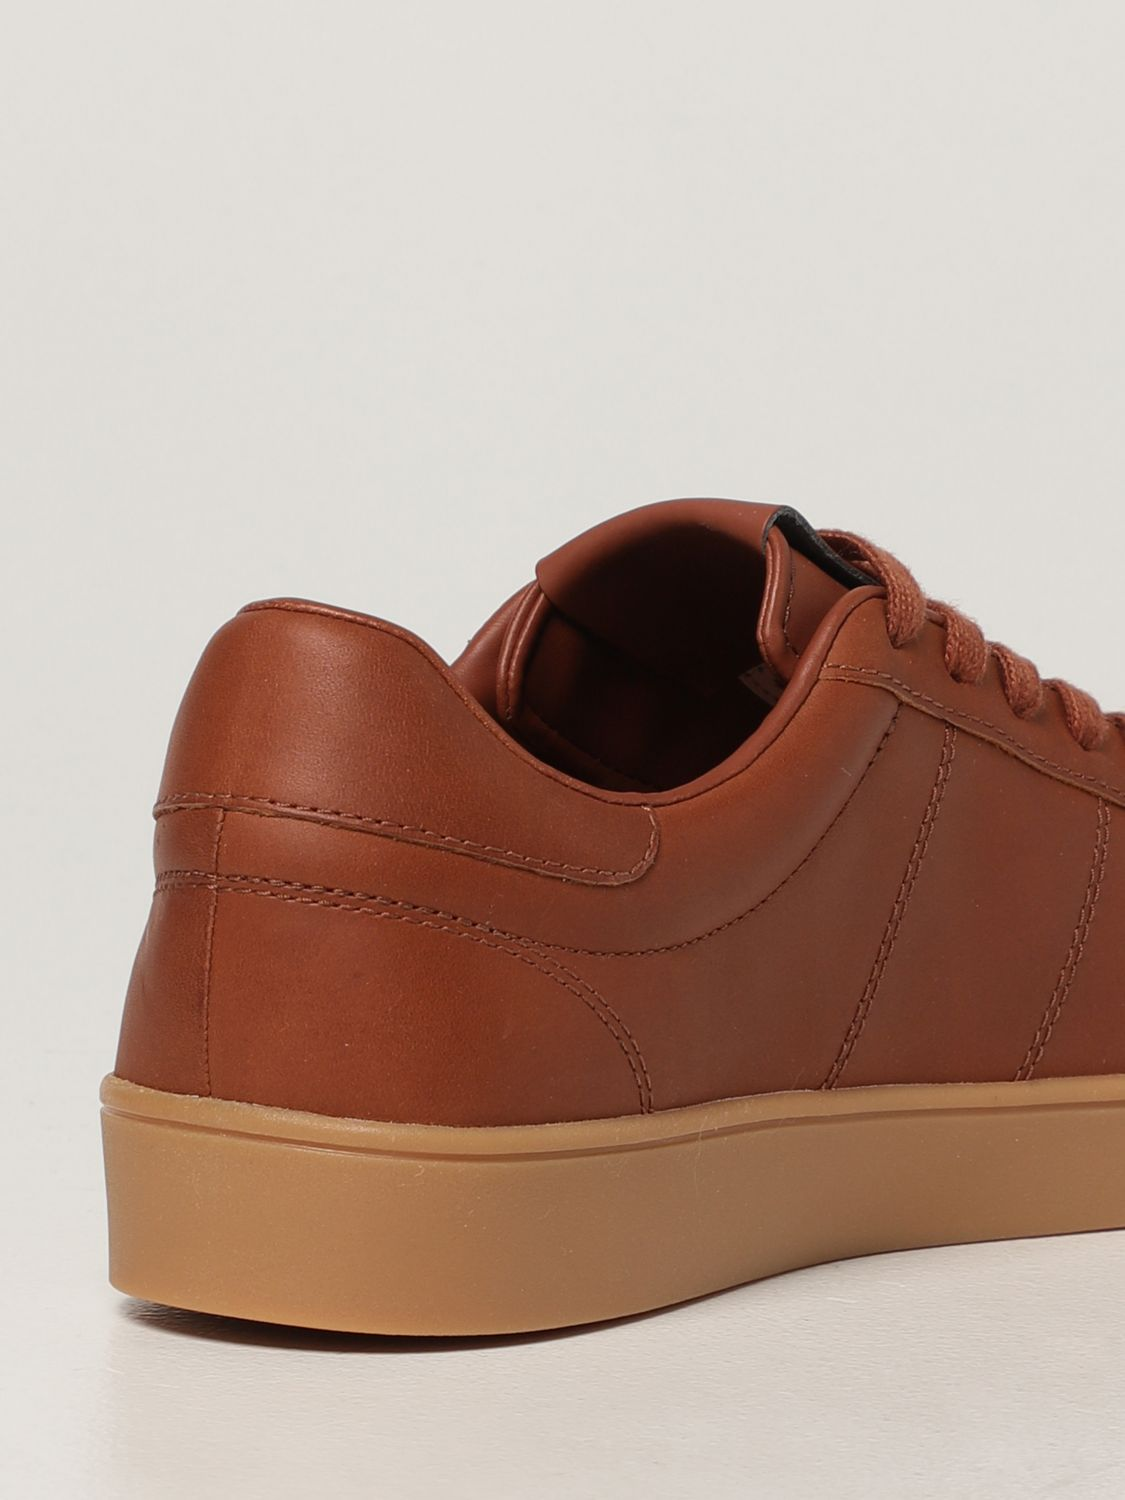 Zapatillas Fred Perry: Zapatillas hombre Fred Perry bronce 3